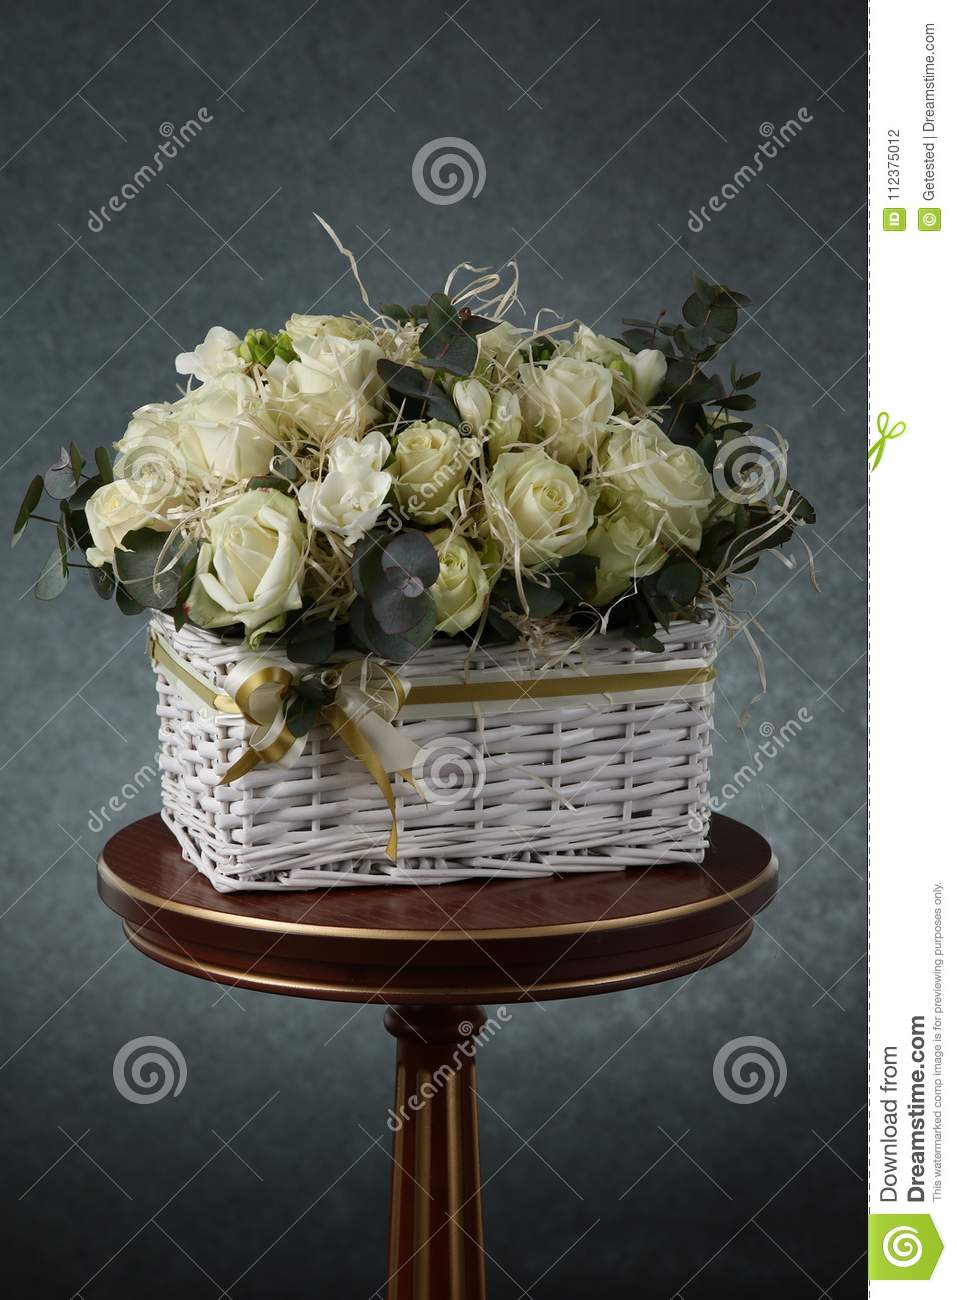 Bouquet with white roses and decorative straw